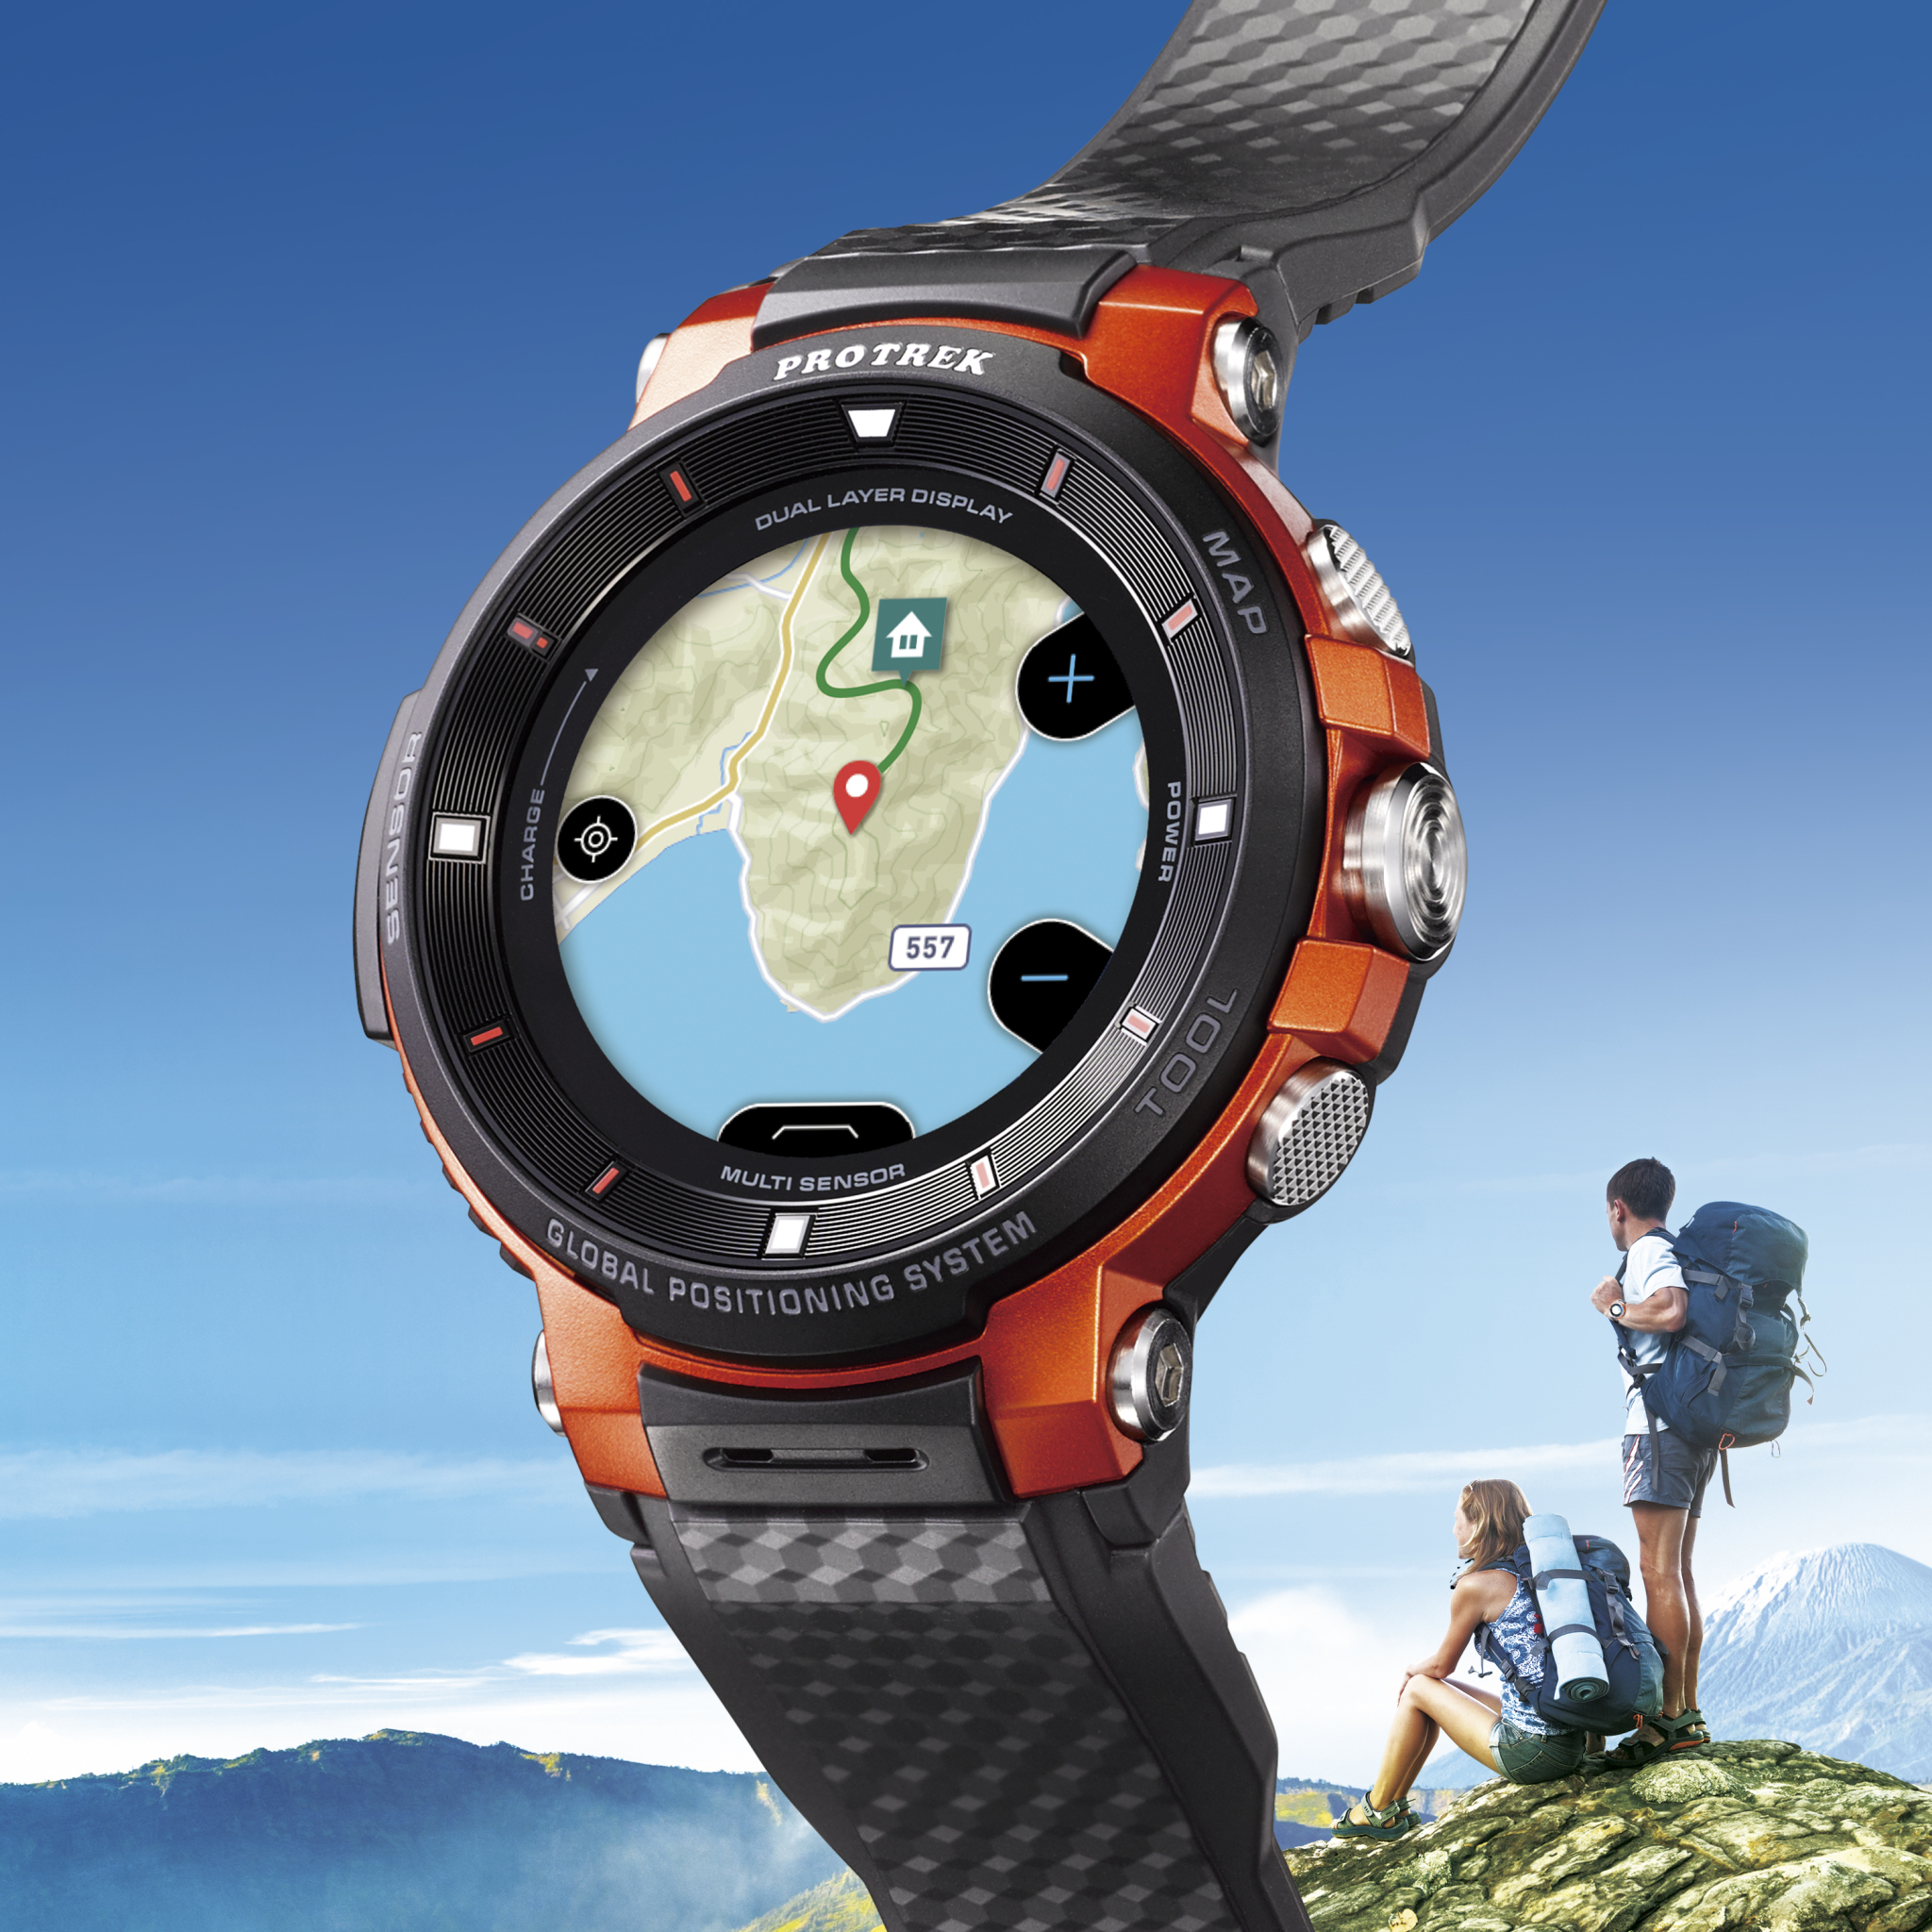 8c8b33b32f9 For more information on Casio s WSD-F30 and full PRO TREK collection of  timepieces